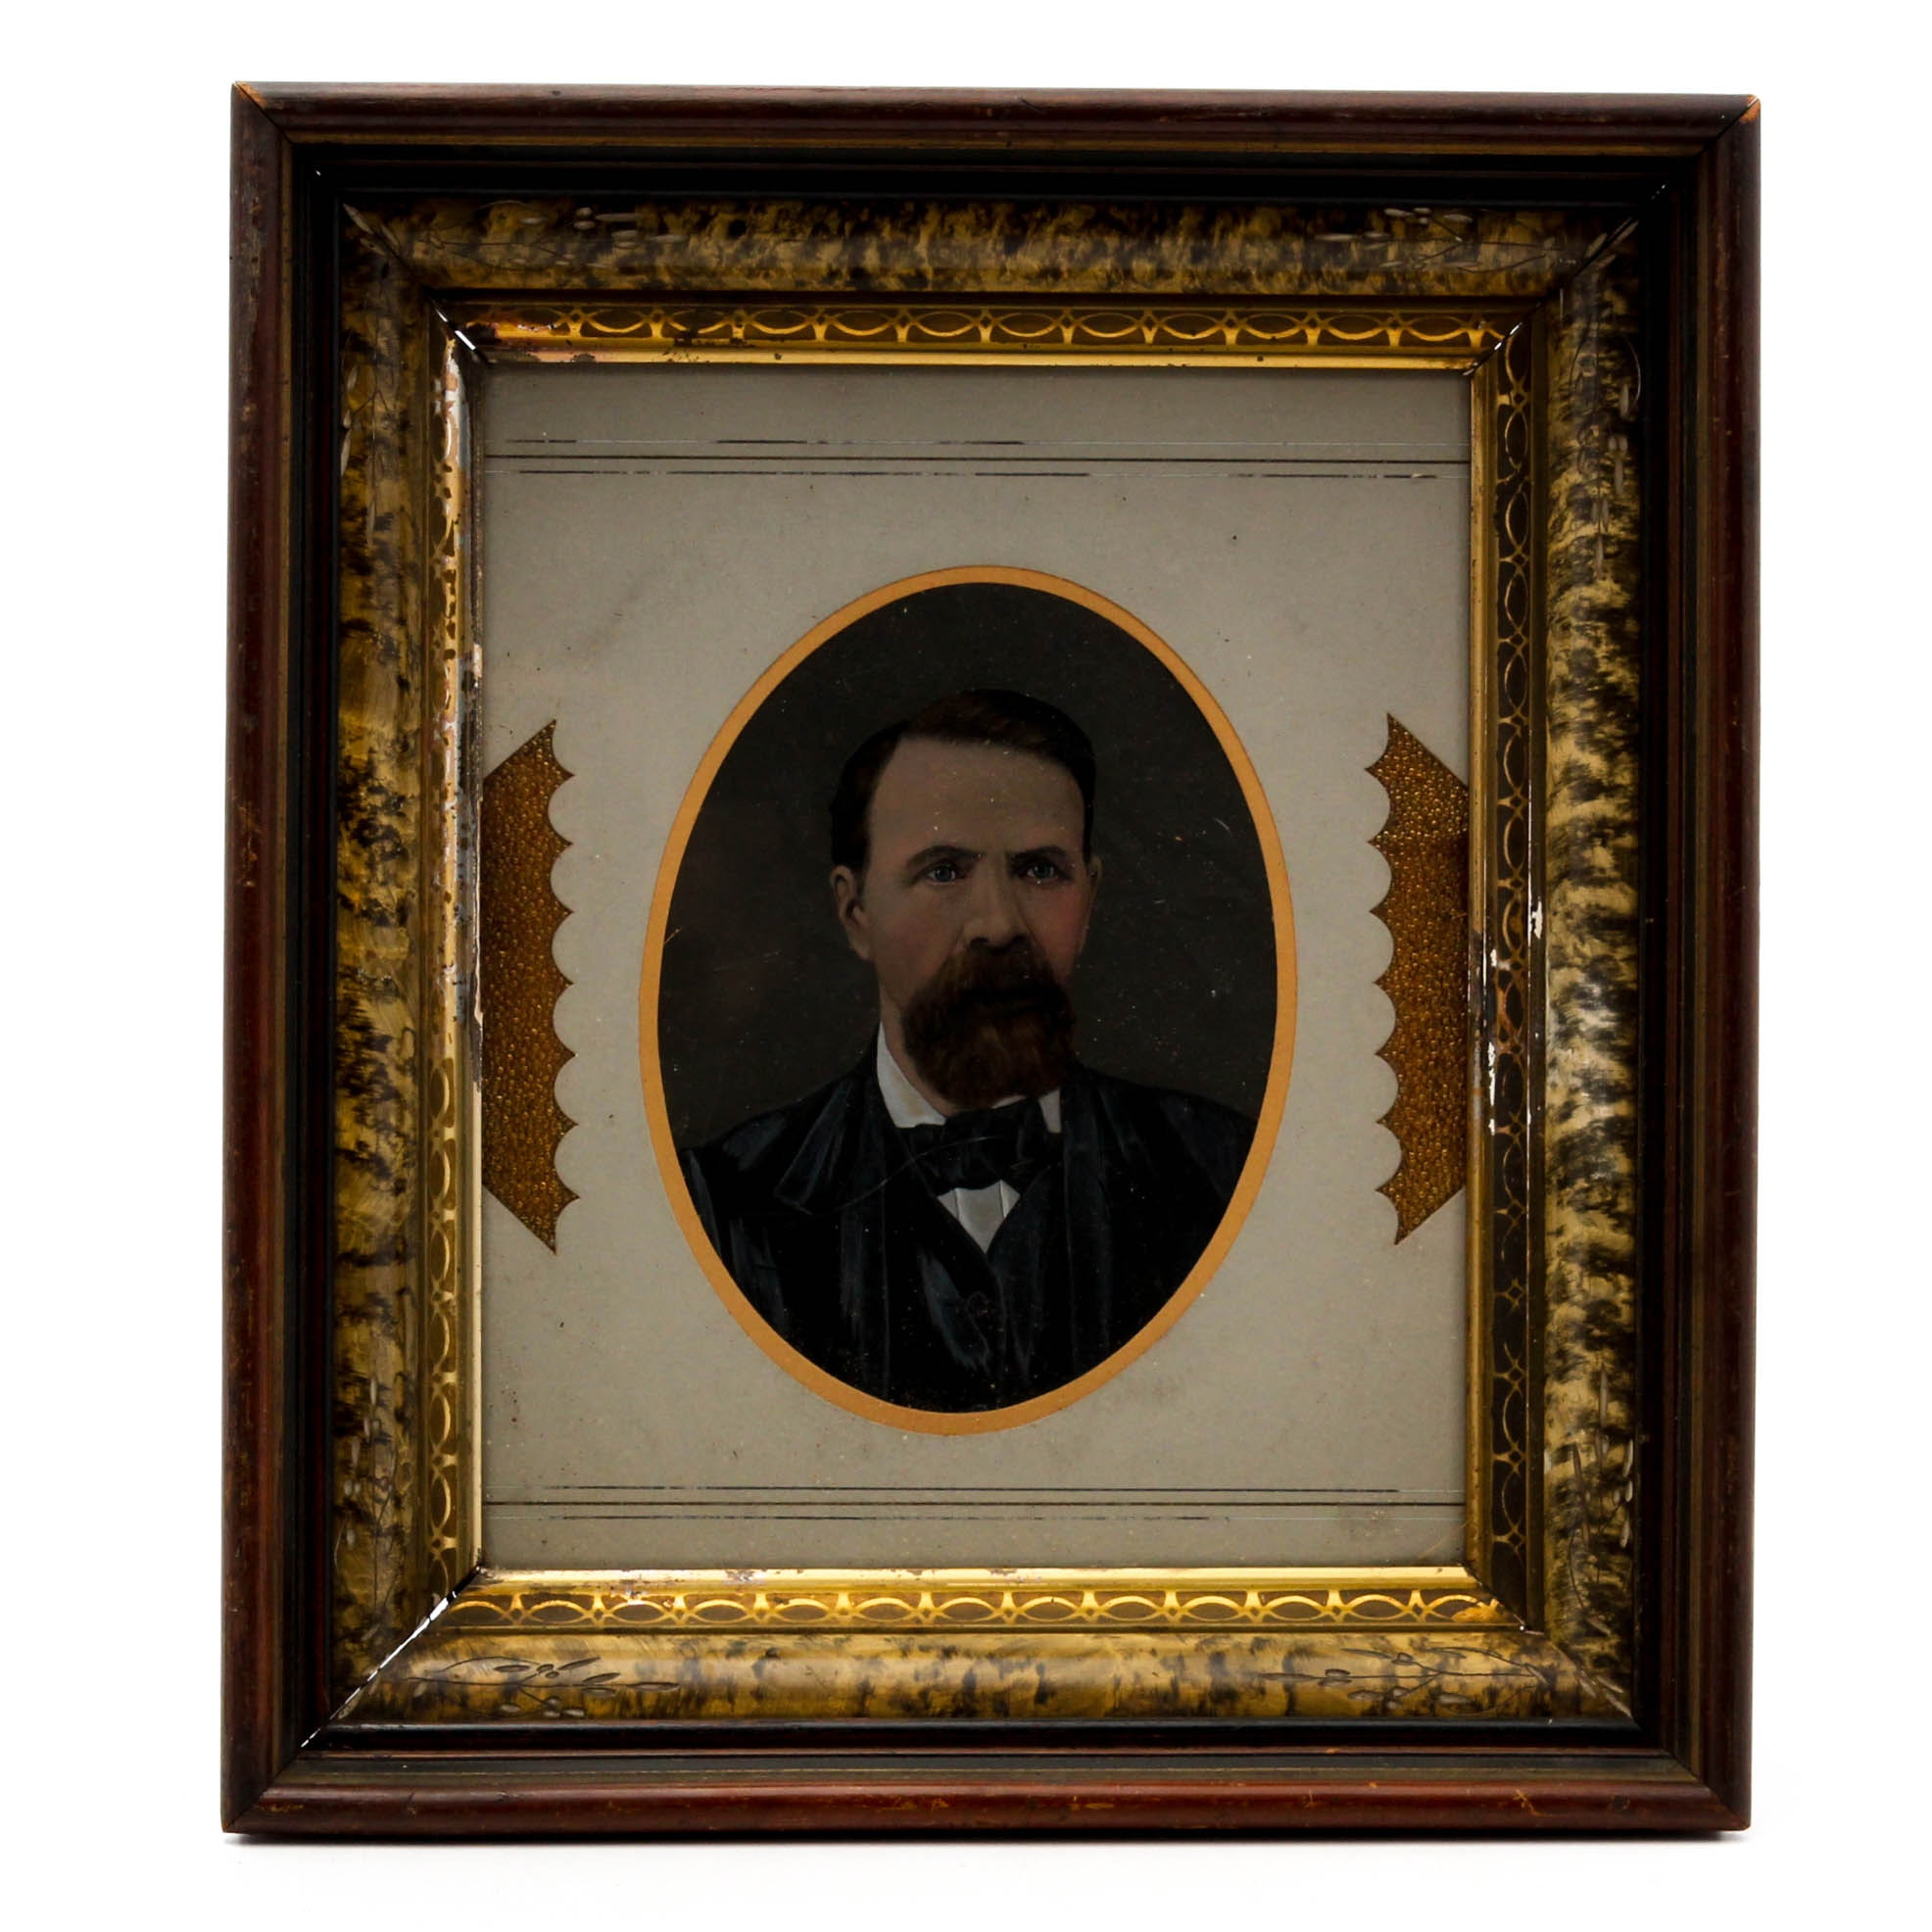 Overpainted Photograph Portrait of a Gentleman, Late 19th Century